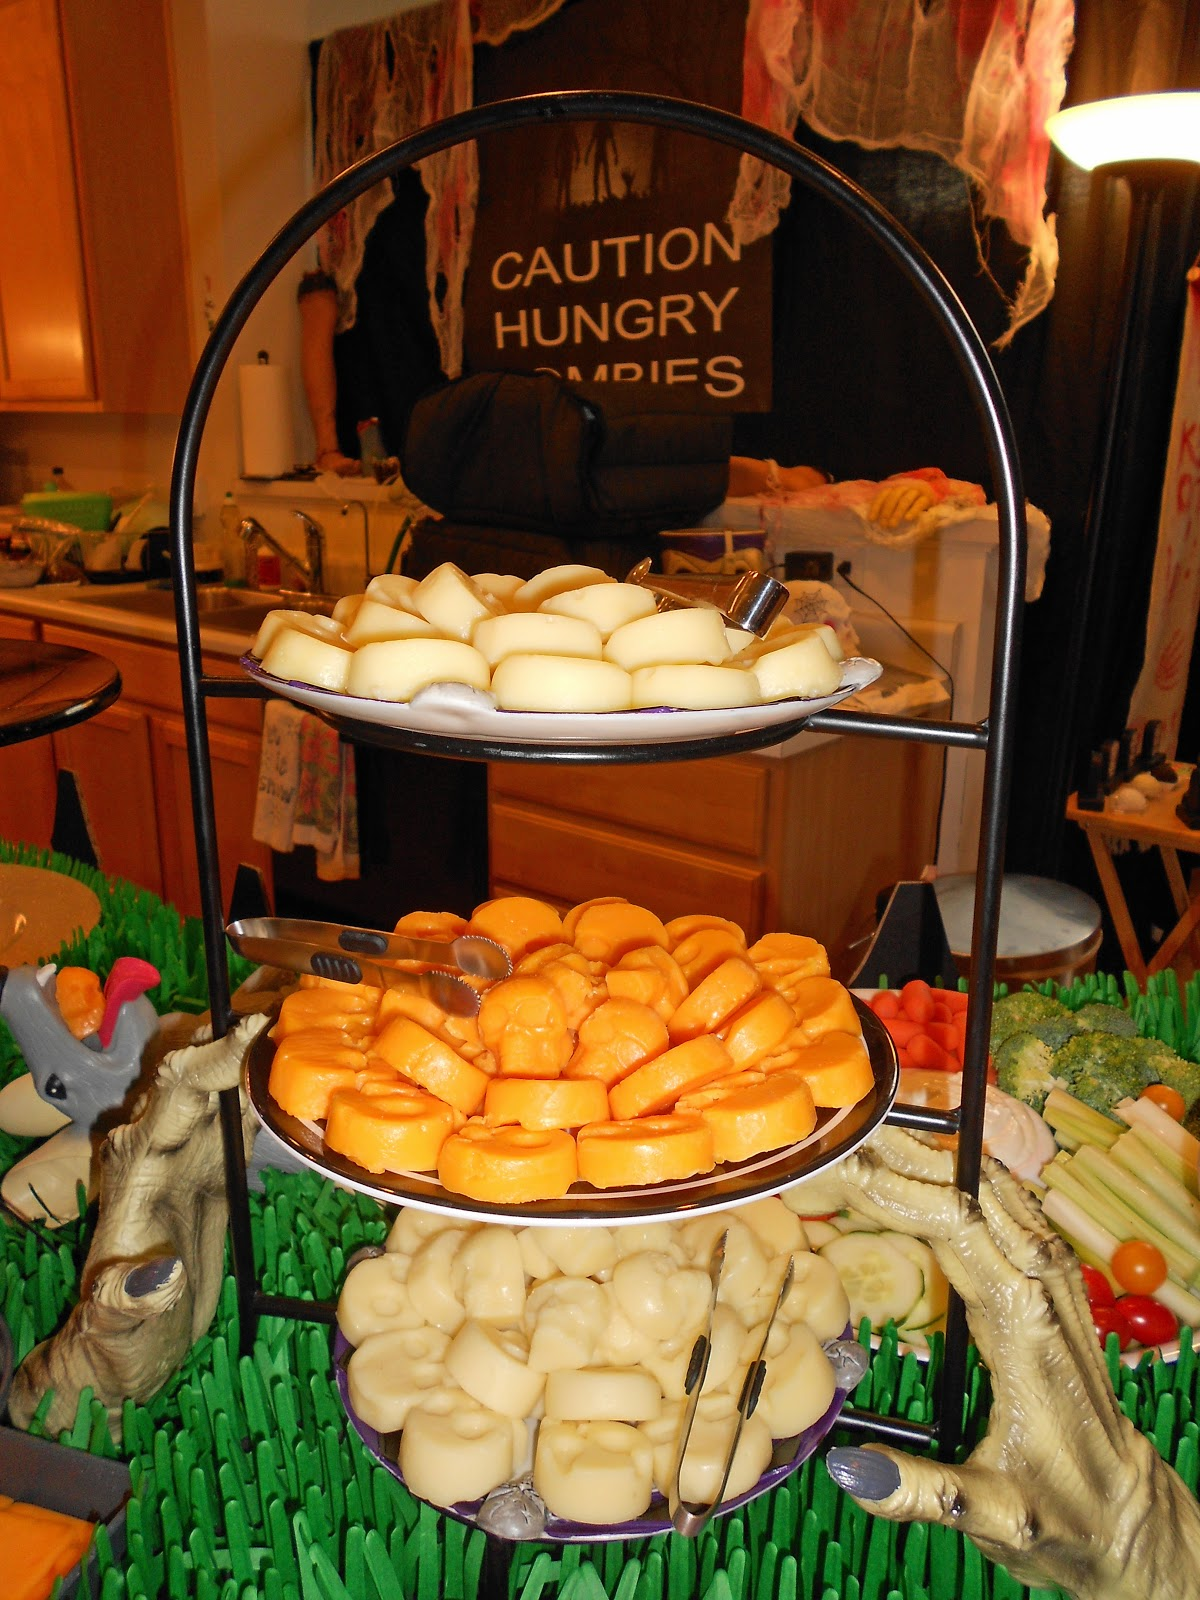 Zombie party party planning ideas for your zombie themed event halloween party food ideas forumfinder